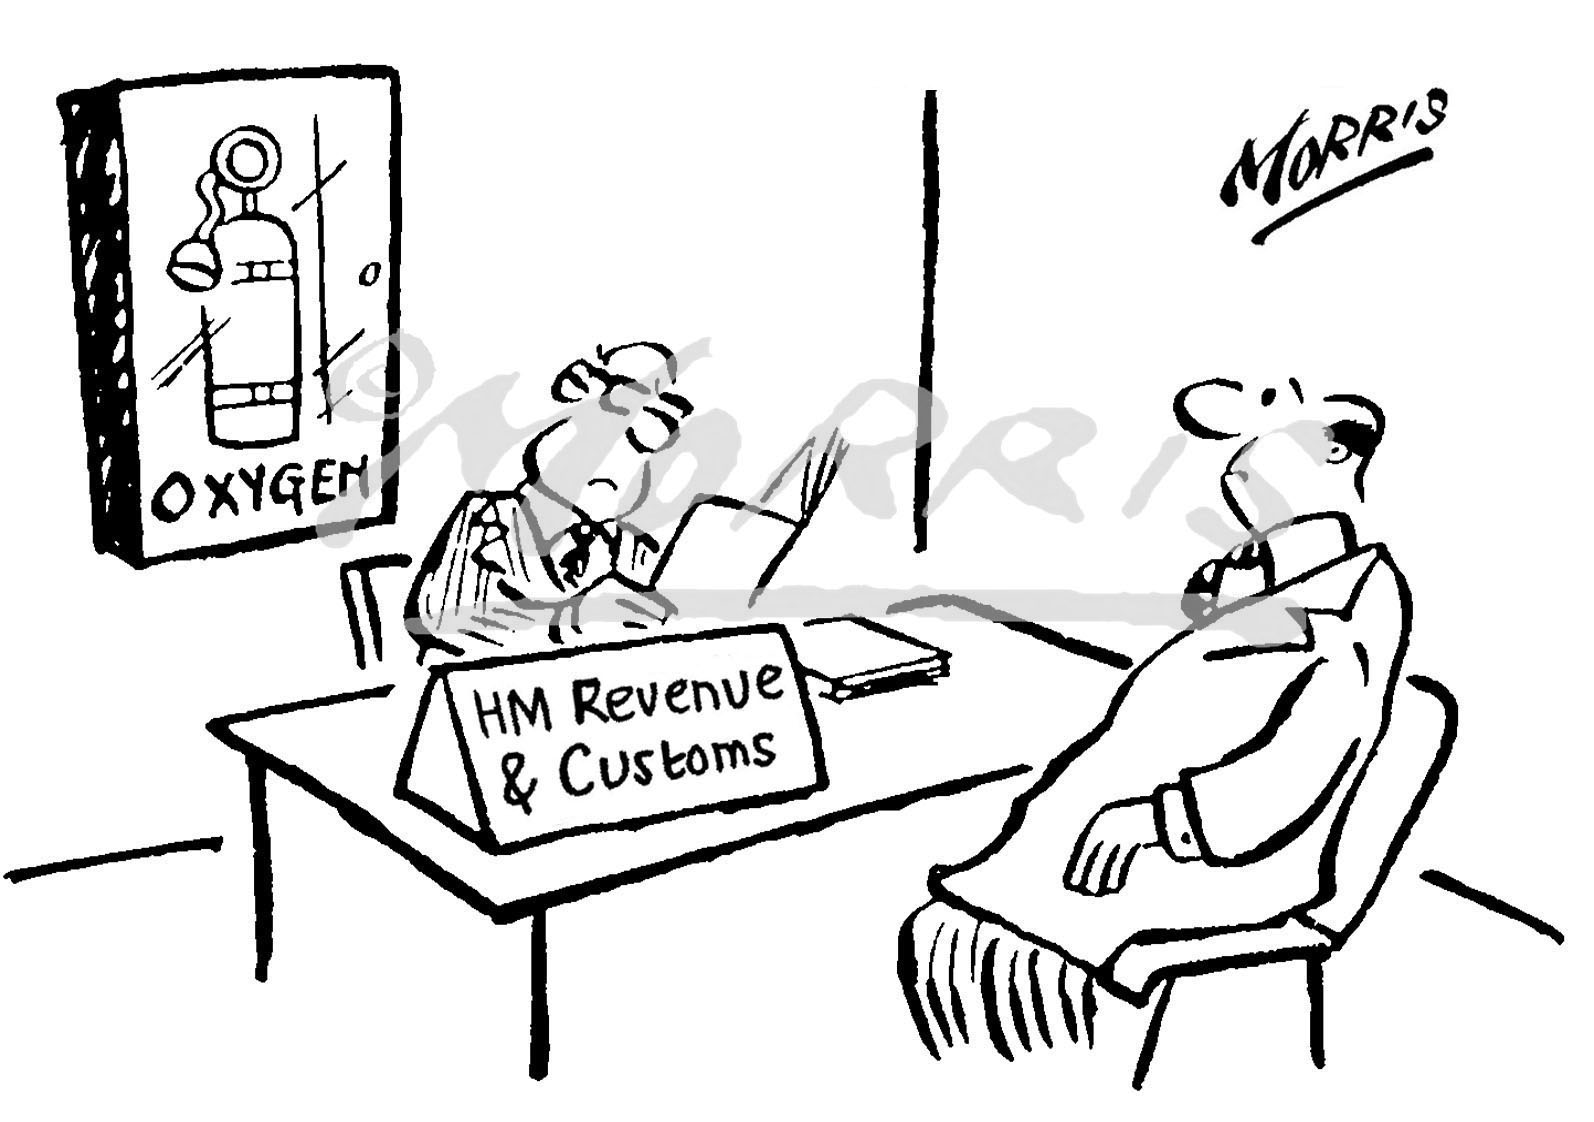 HMRC business cartoon Ref: 0015bw